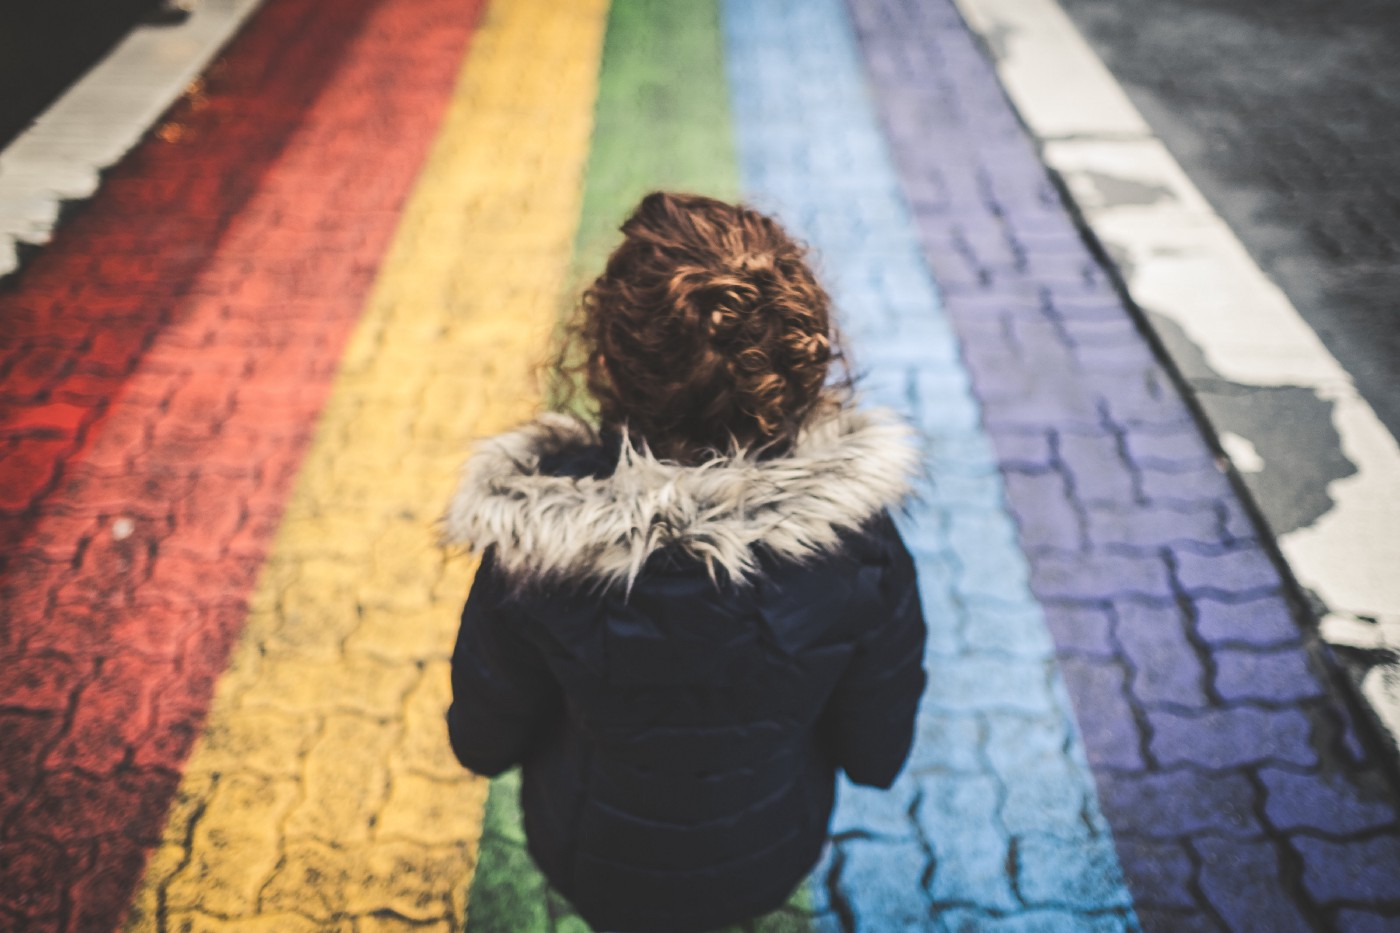 Child looking ahead at rainbow colored stripes on the road leading away from her